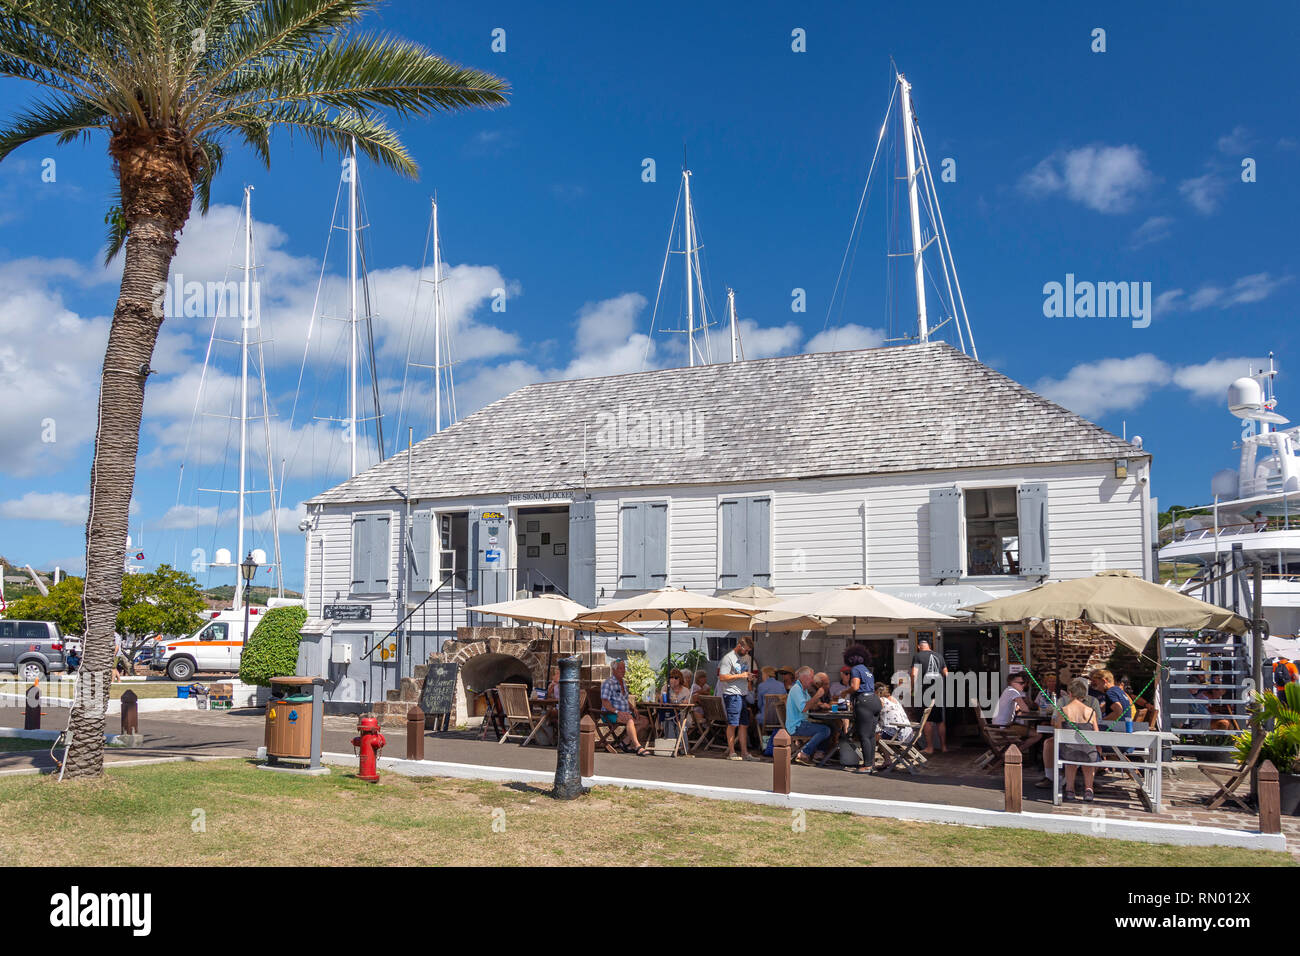 The Hot Spot Cafe, Nelson's Dockyard, Nelson's Dockyard National Park, St Paul Parish, Antigua, Antigua and Barbuda, Lesser Antilles, Caribbean - Stock Image